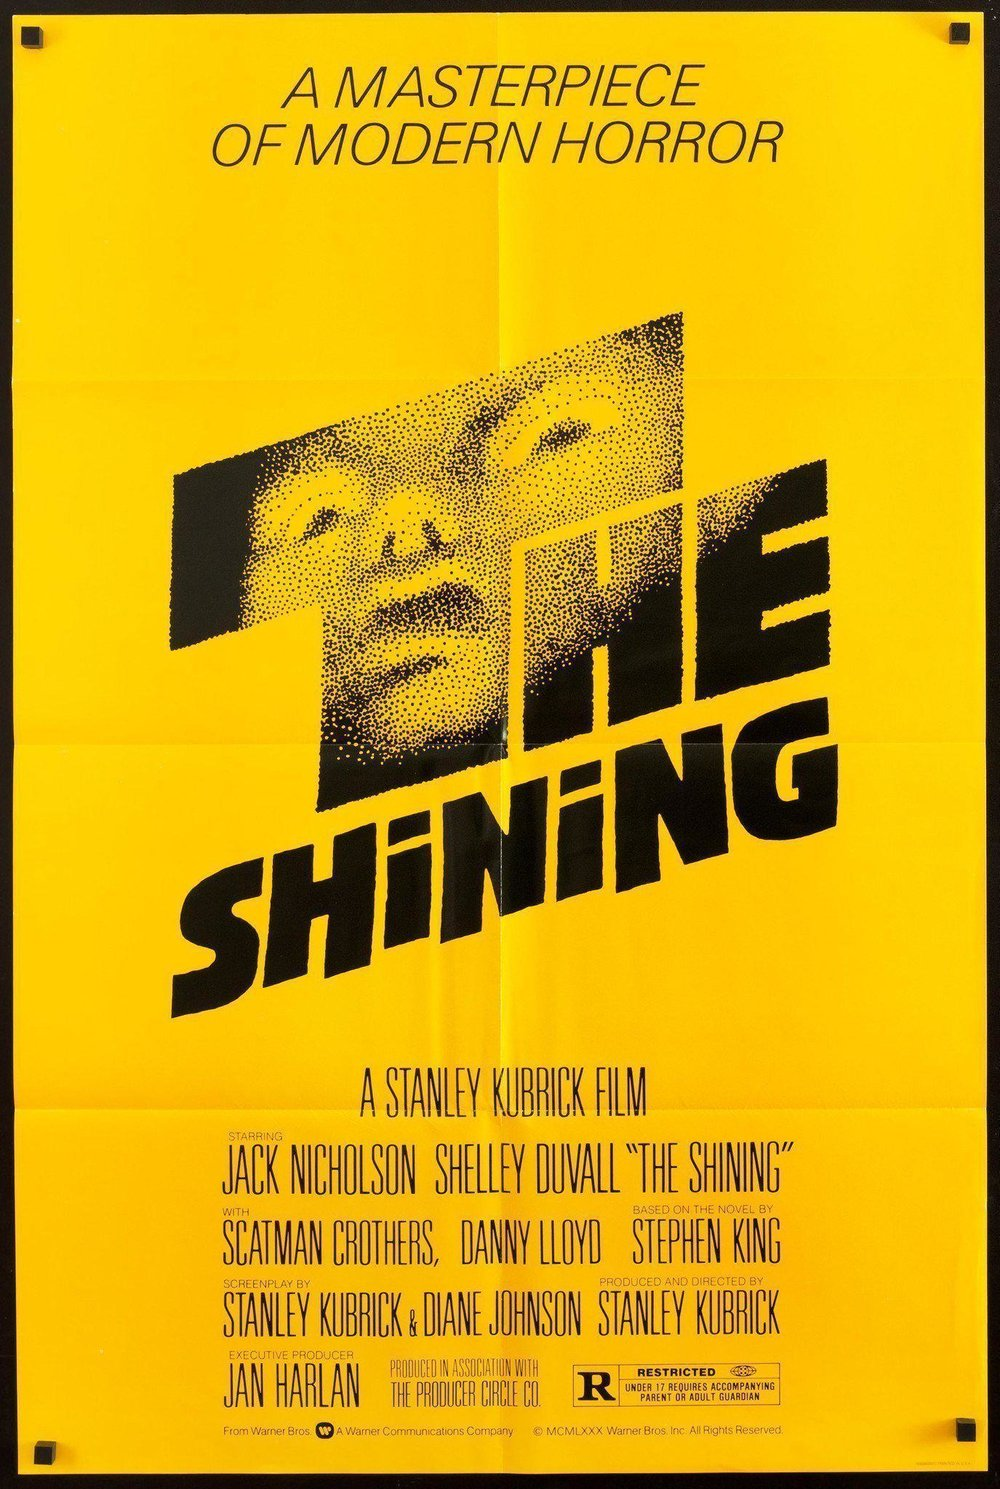 the-shining-vintage-movie-poster-original-1-sheet-27x41-6979.jpg